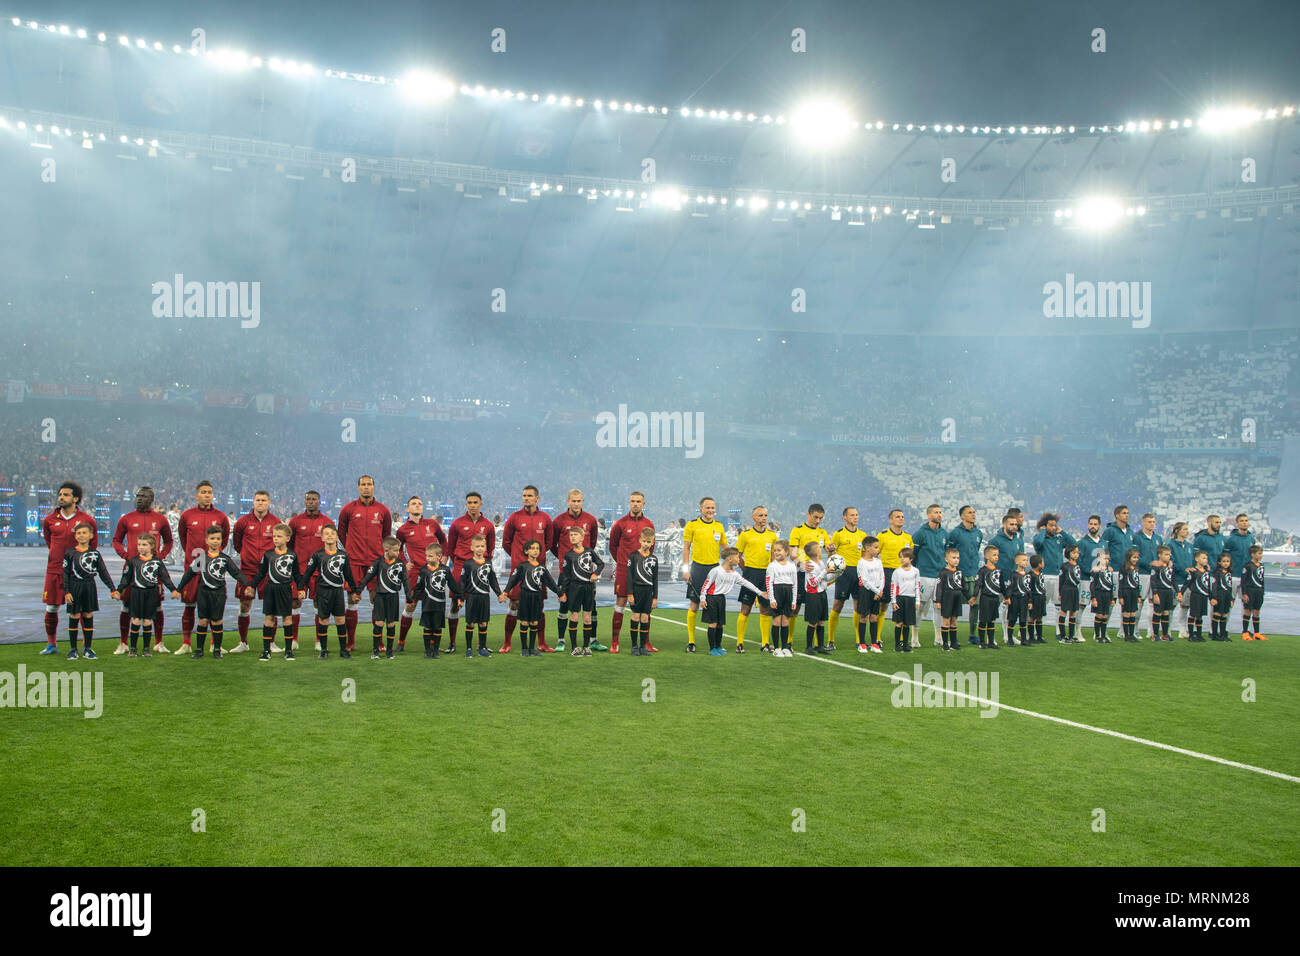 Line Up    during the UEFA Champions League Final match between Real Madrid CF 3-1  Liverpool FC at NSC Olimpiyskiy Stadium in Kiev, Ukraine, on May 26, 2018. (Photo by Maurizio Borsari/AFLO) - Stock Image